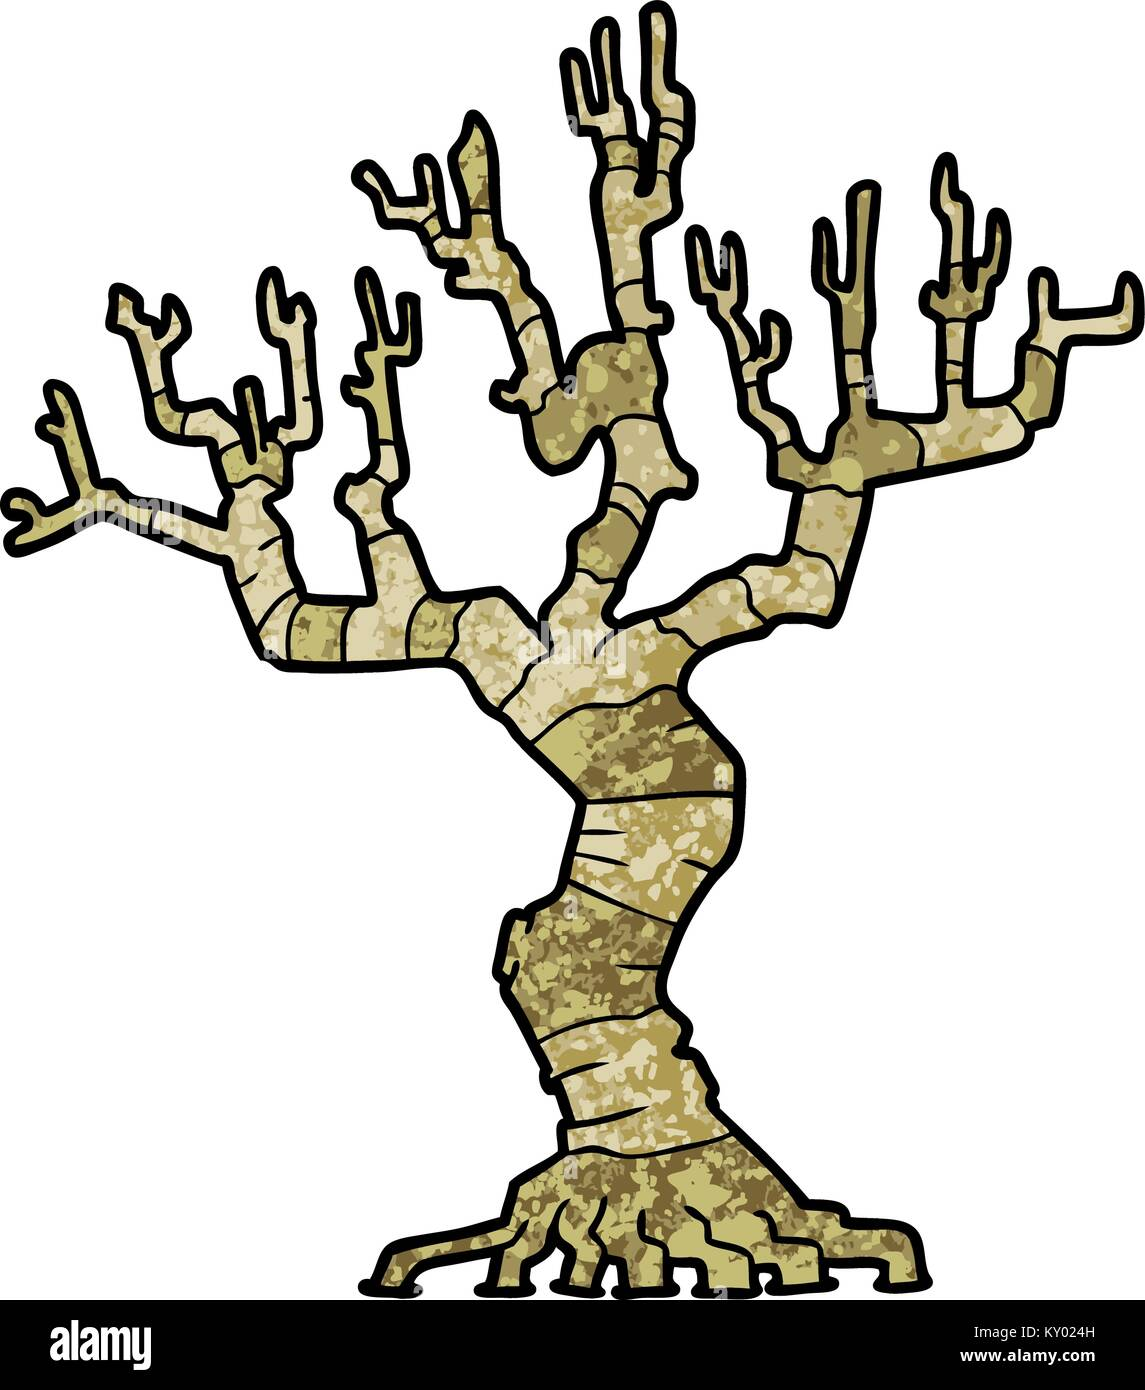 Cartoon Dead Tree Stock Vector Image Art Alamy Native trees of lexington avenue. alamy